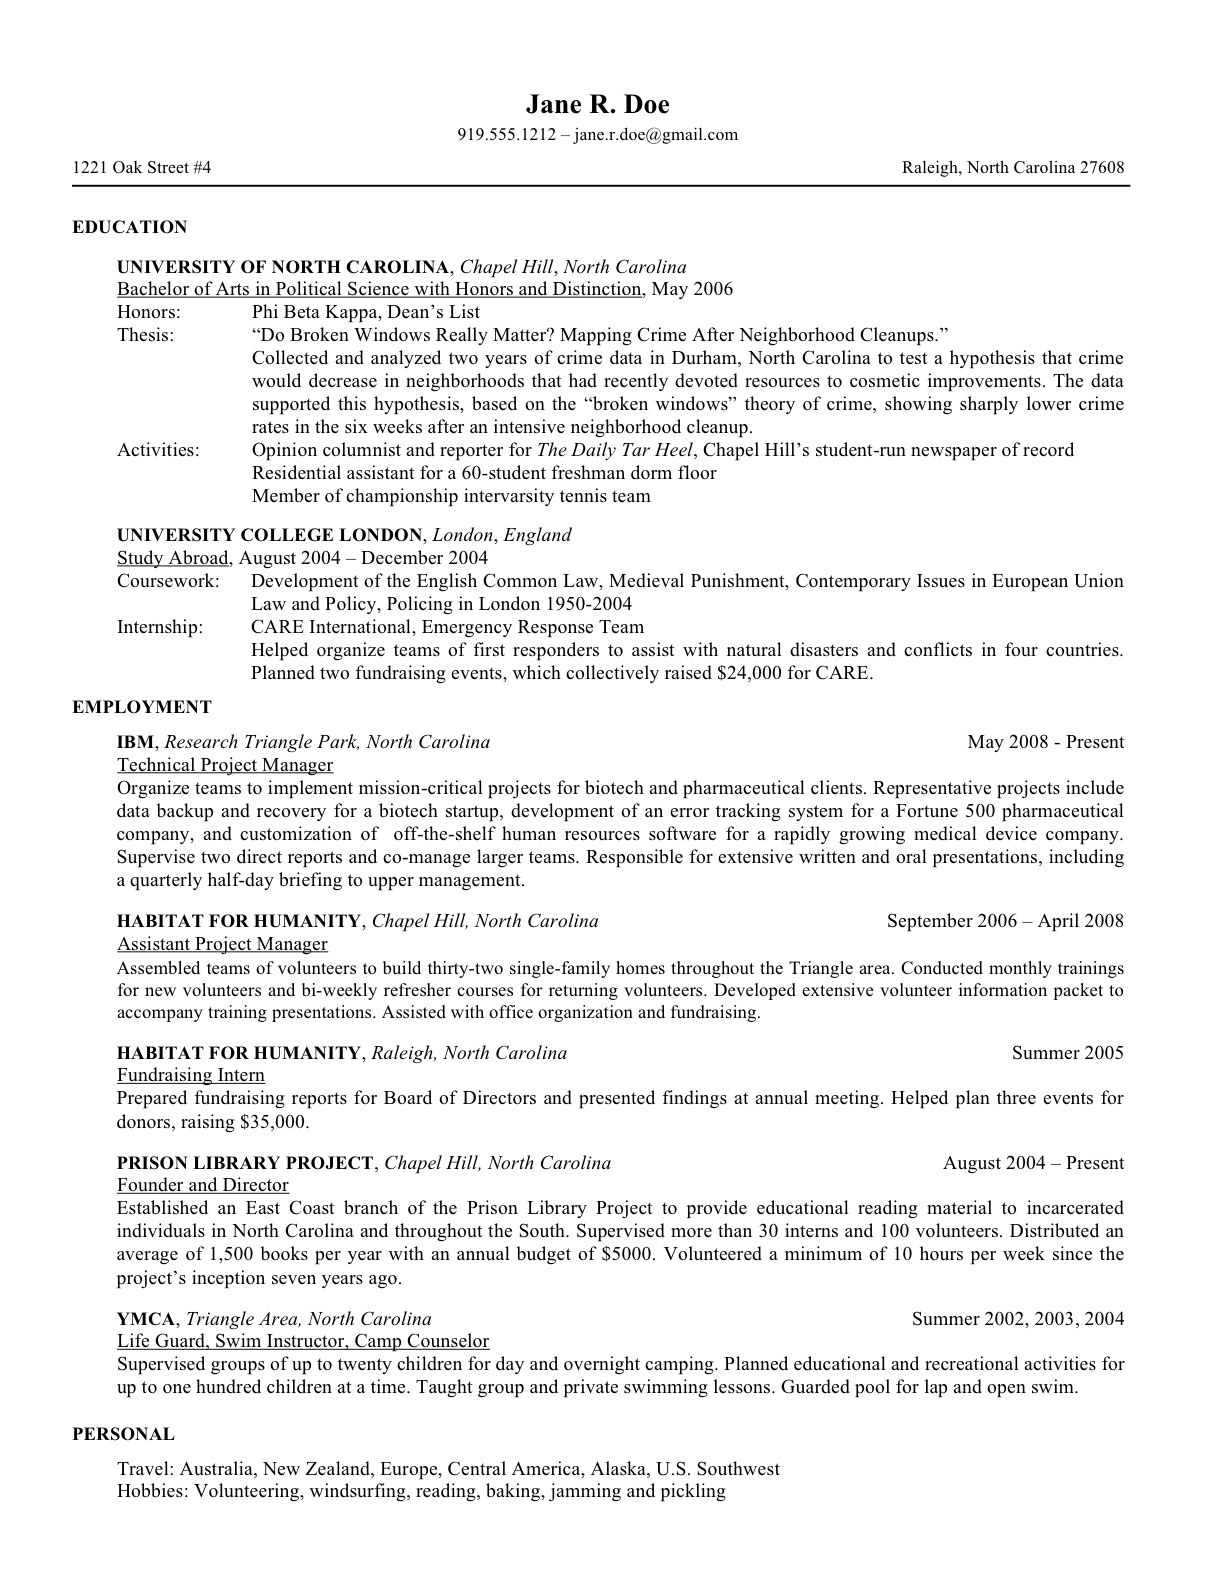 How To Do A Resume For College 7 Law School Resume Templates Prepping Your Resume For Law School